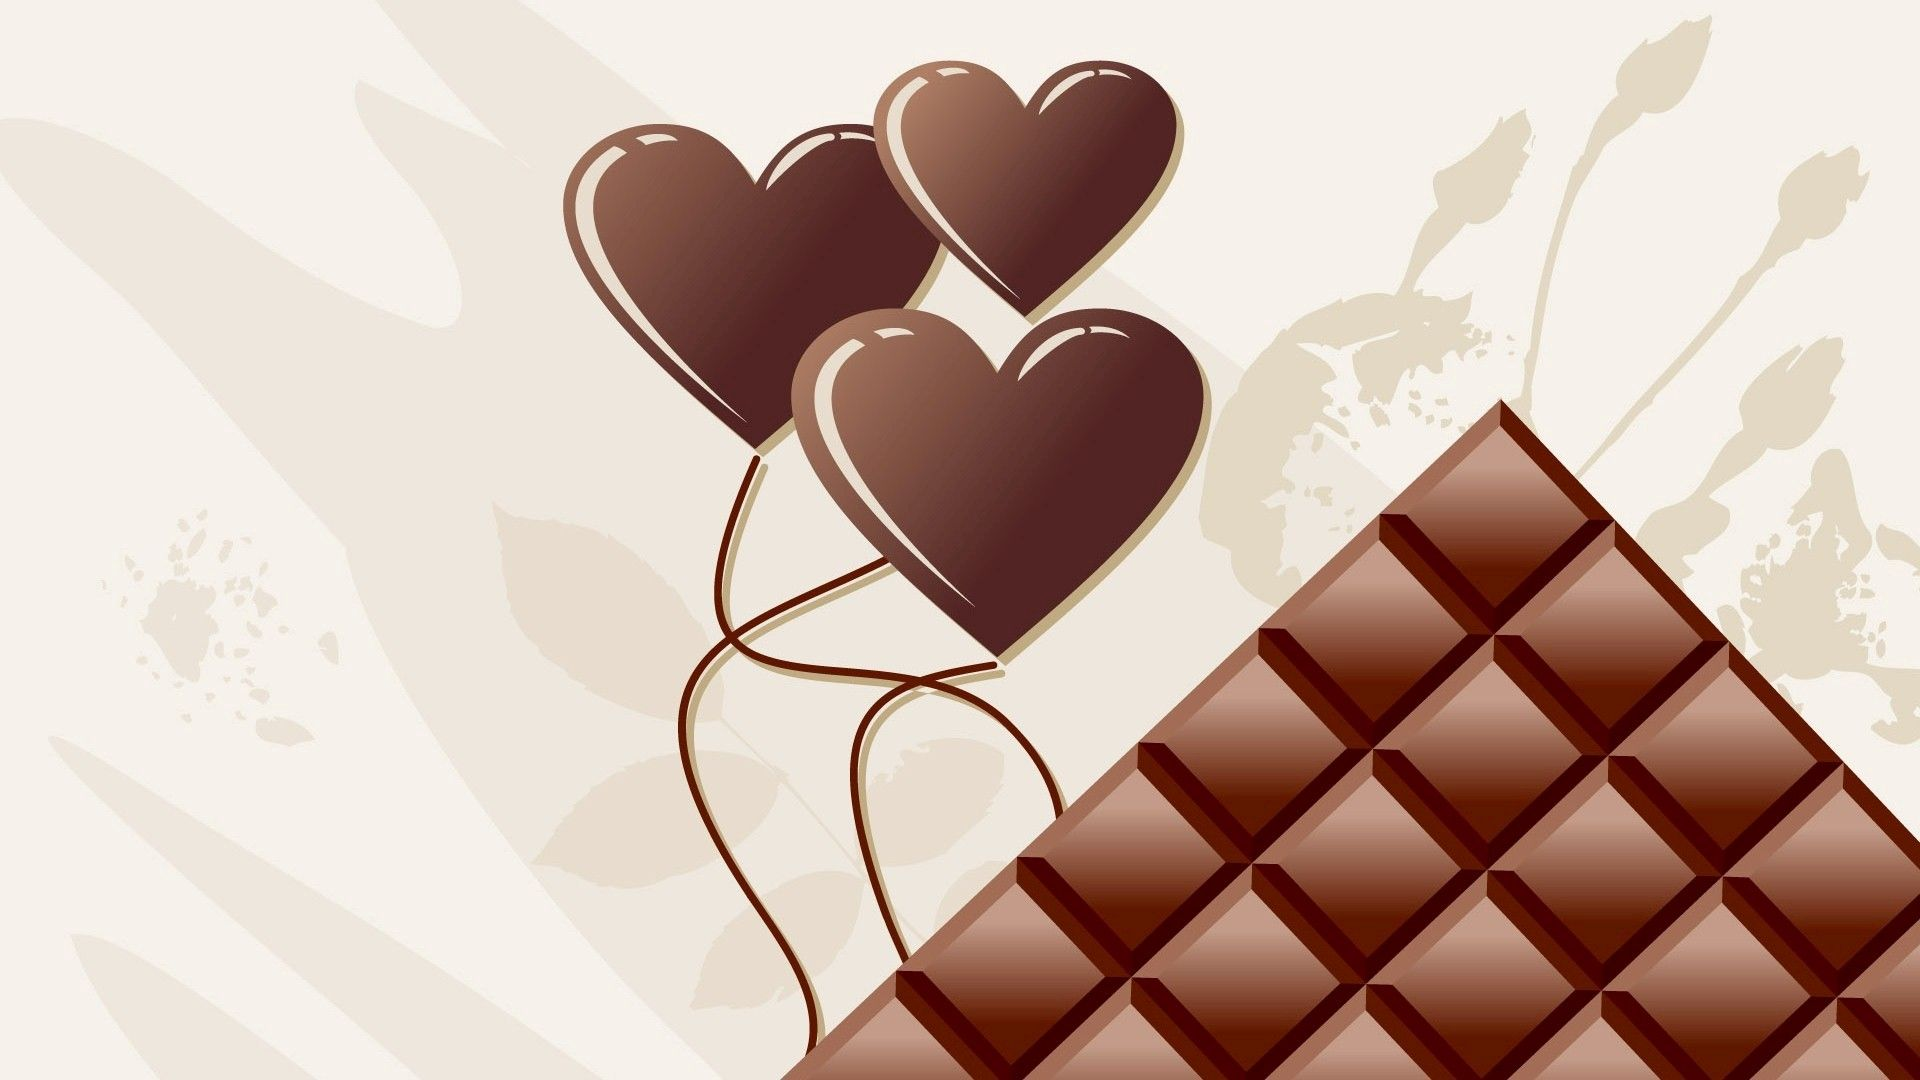 chocolate heart   wallpaperhd.in   pinterest   more chocolate